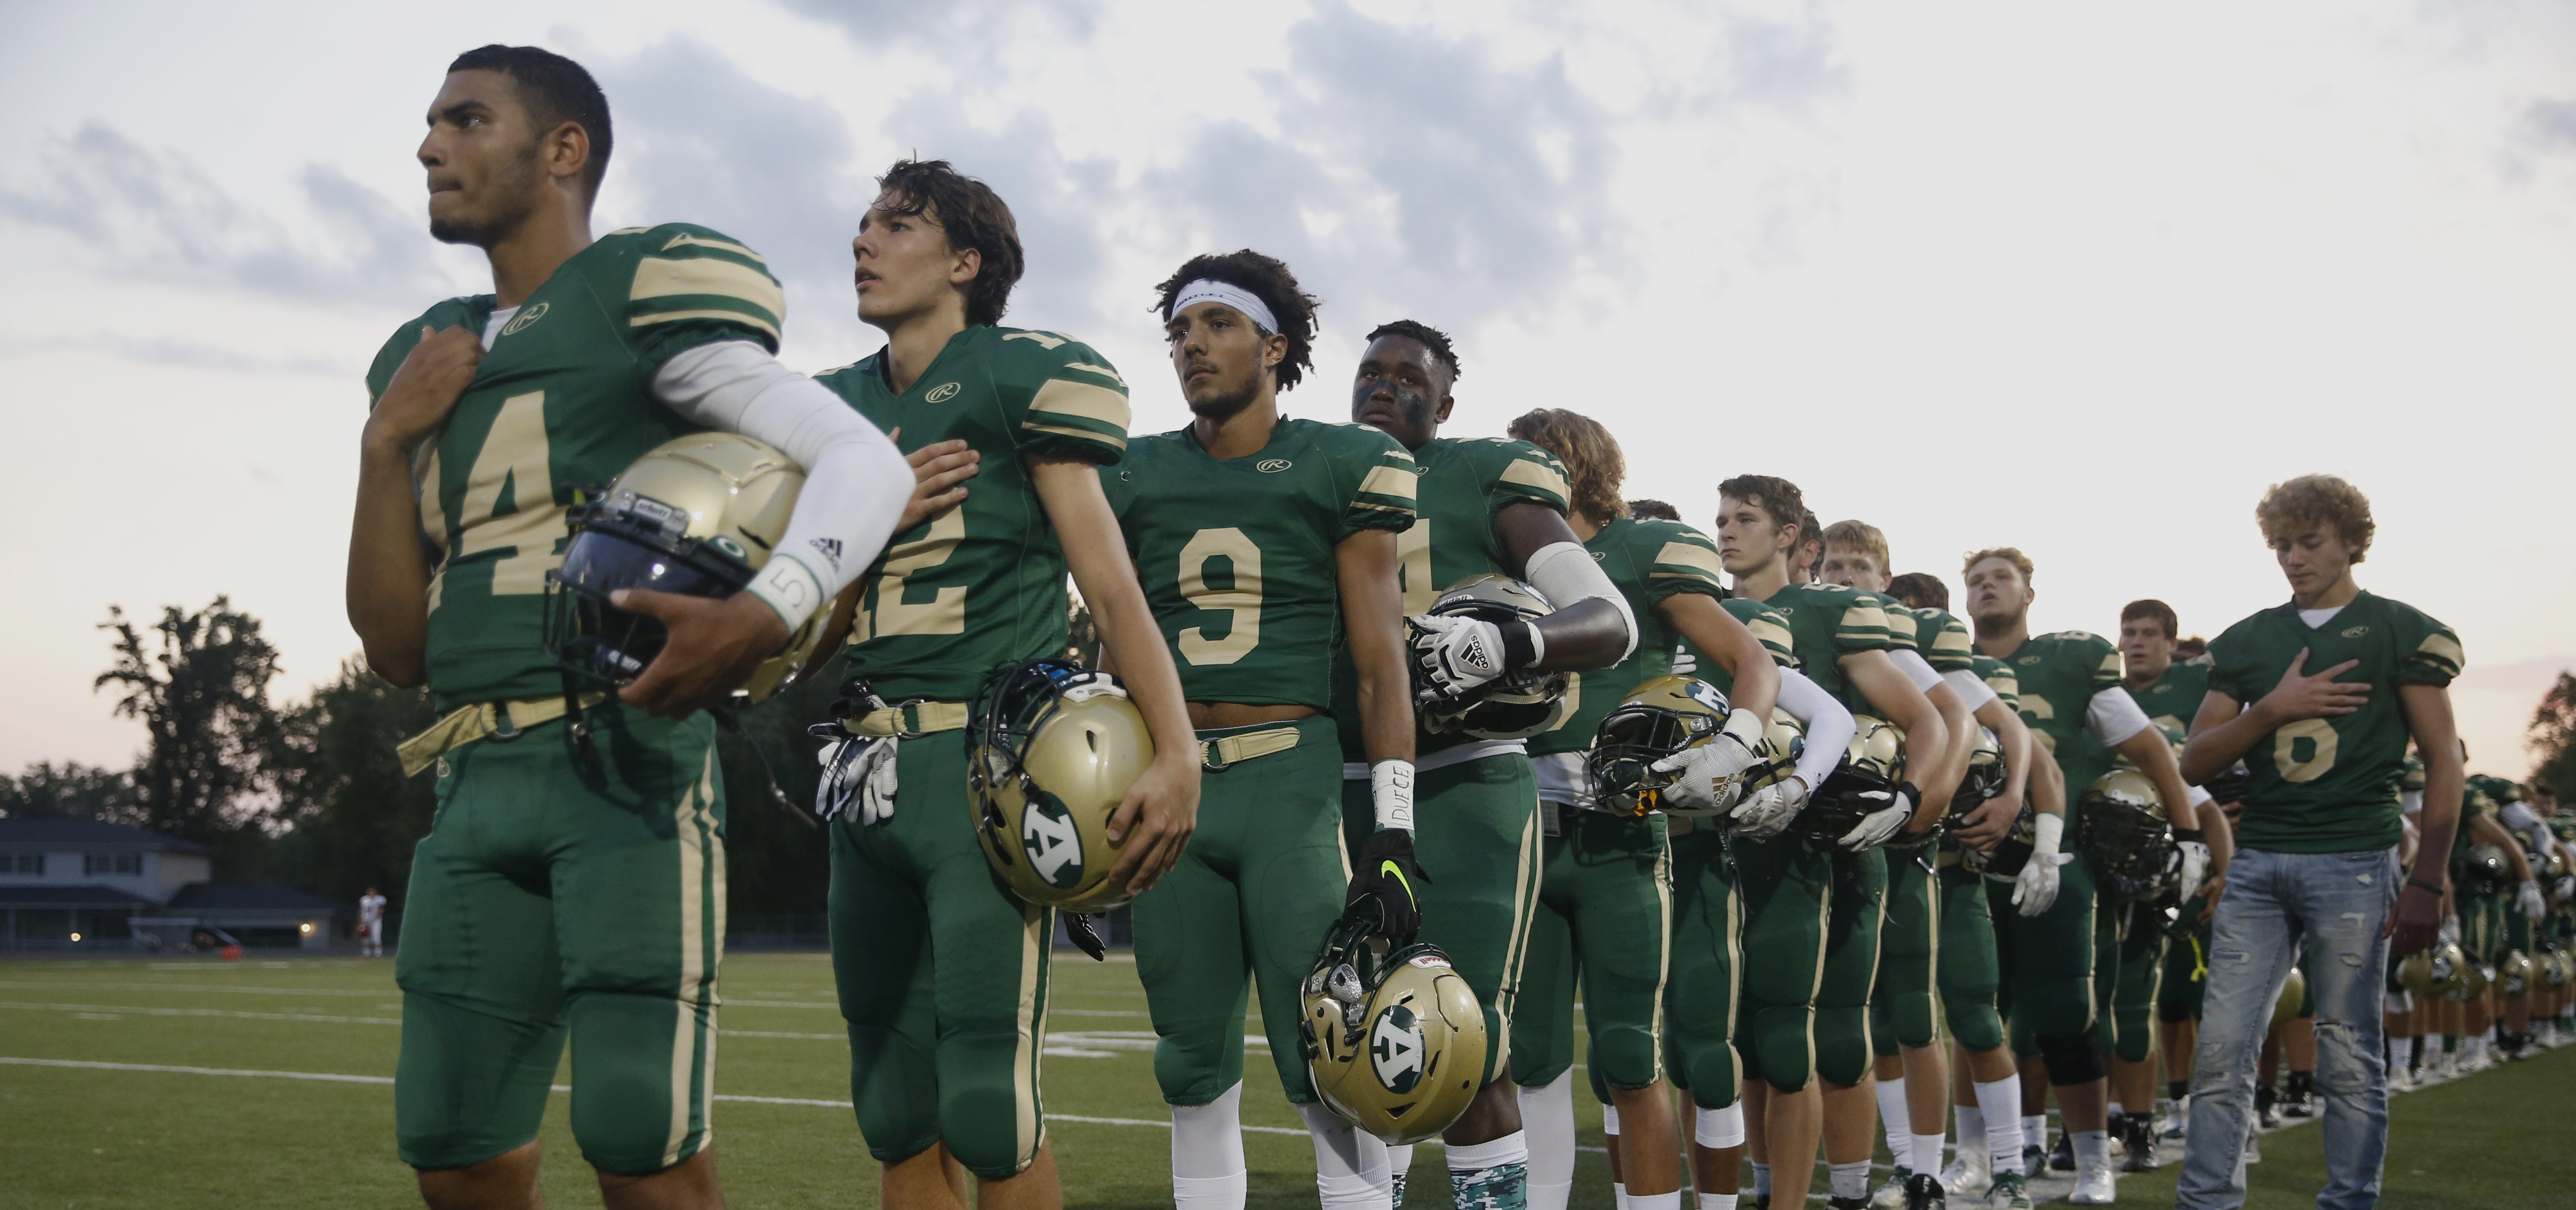 Players of Athens Bulldogs lines up for the national anthem before the game against Alexander Spartans at Athens High School on Sep 20, 2019.